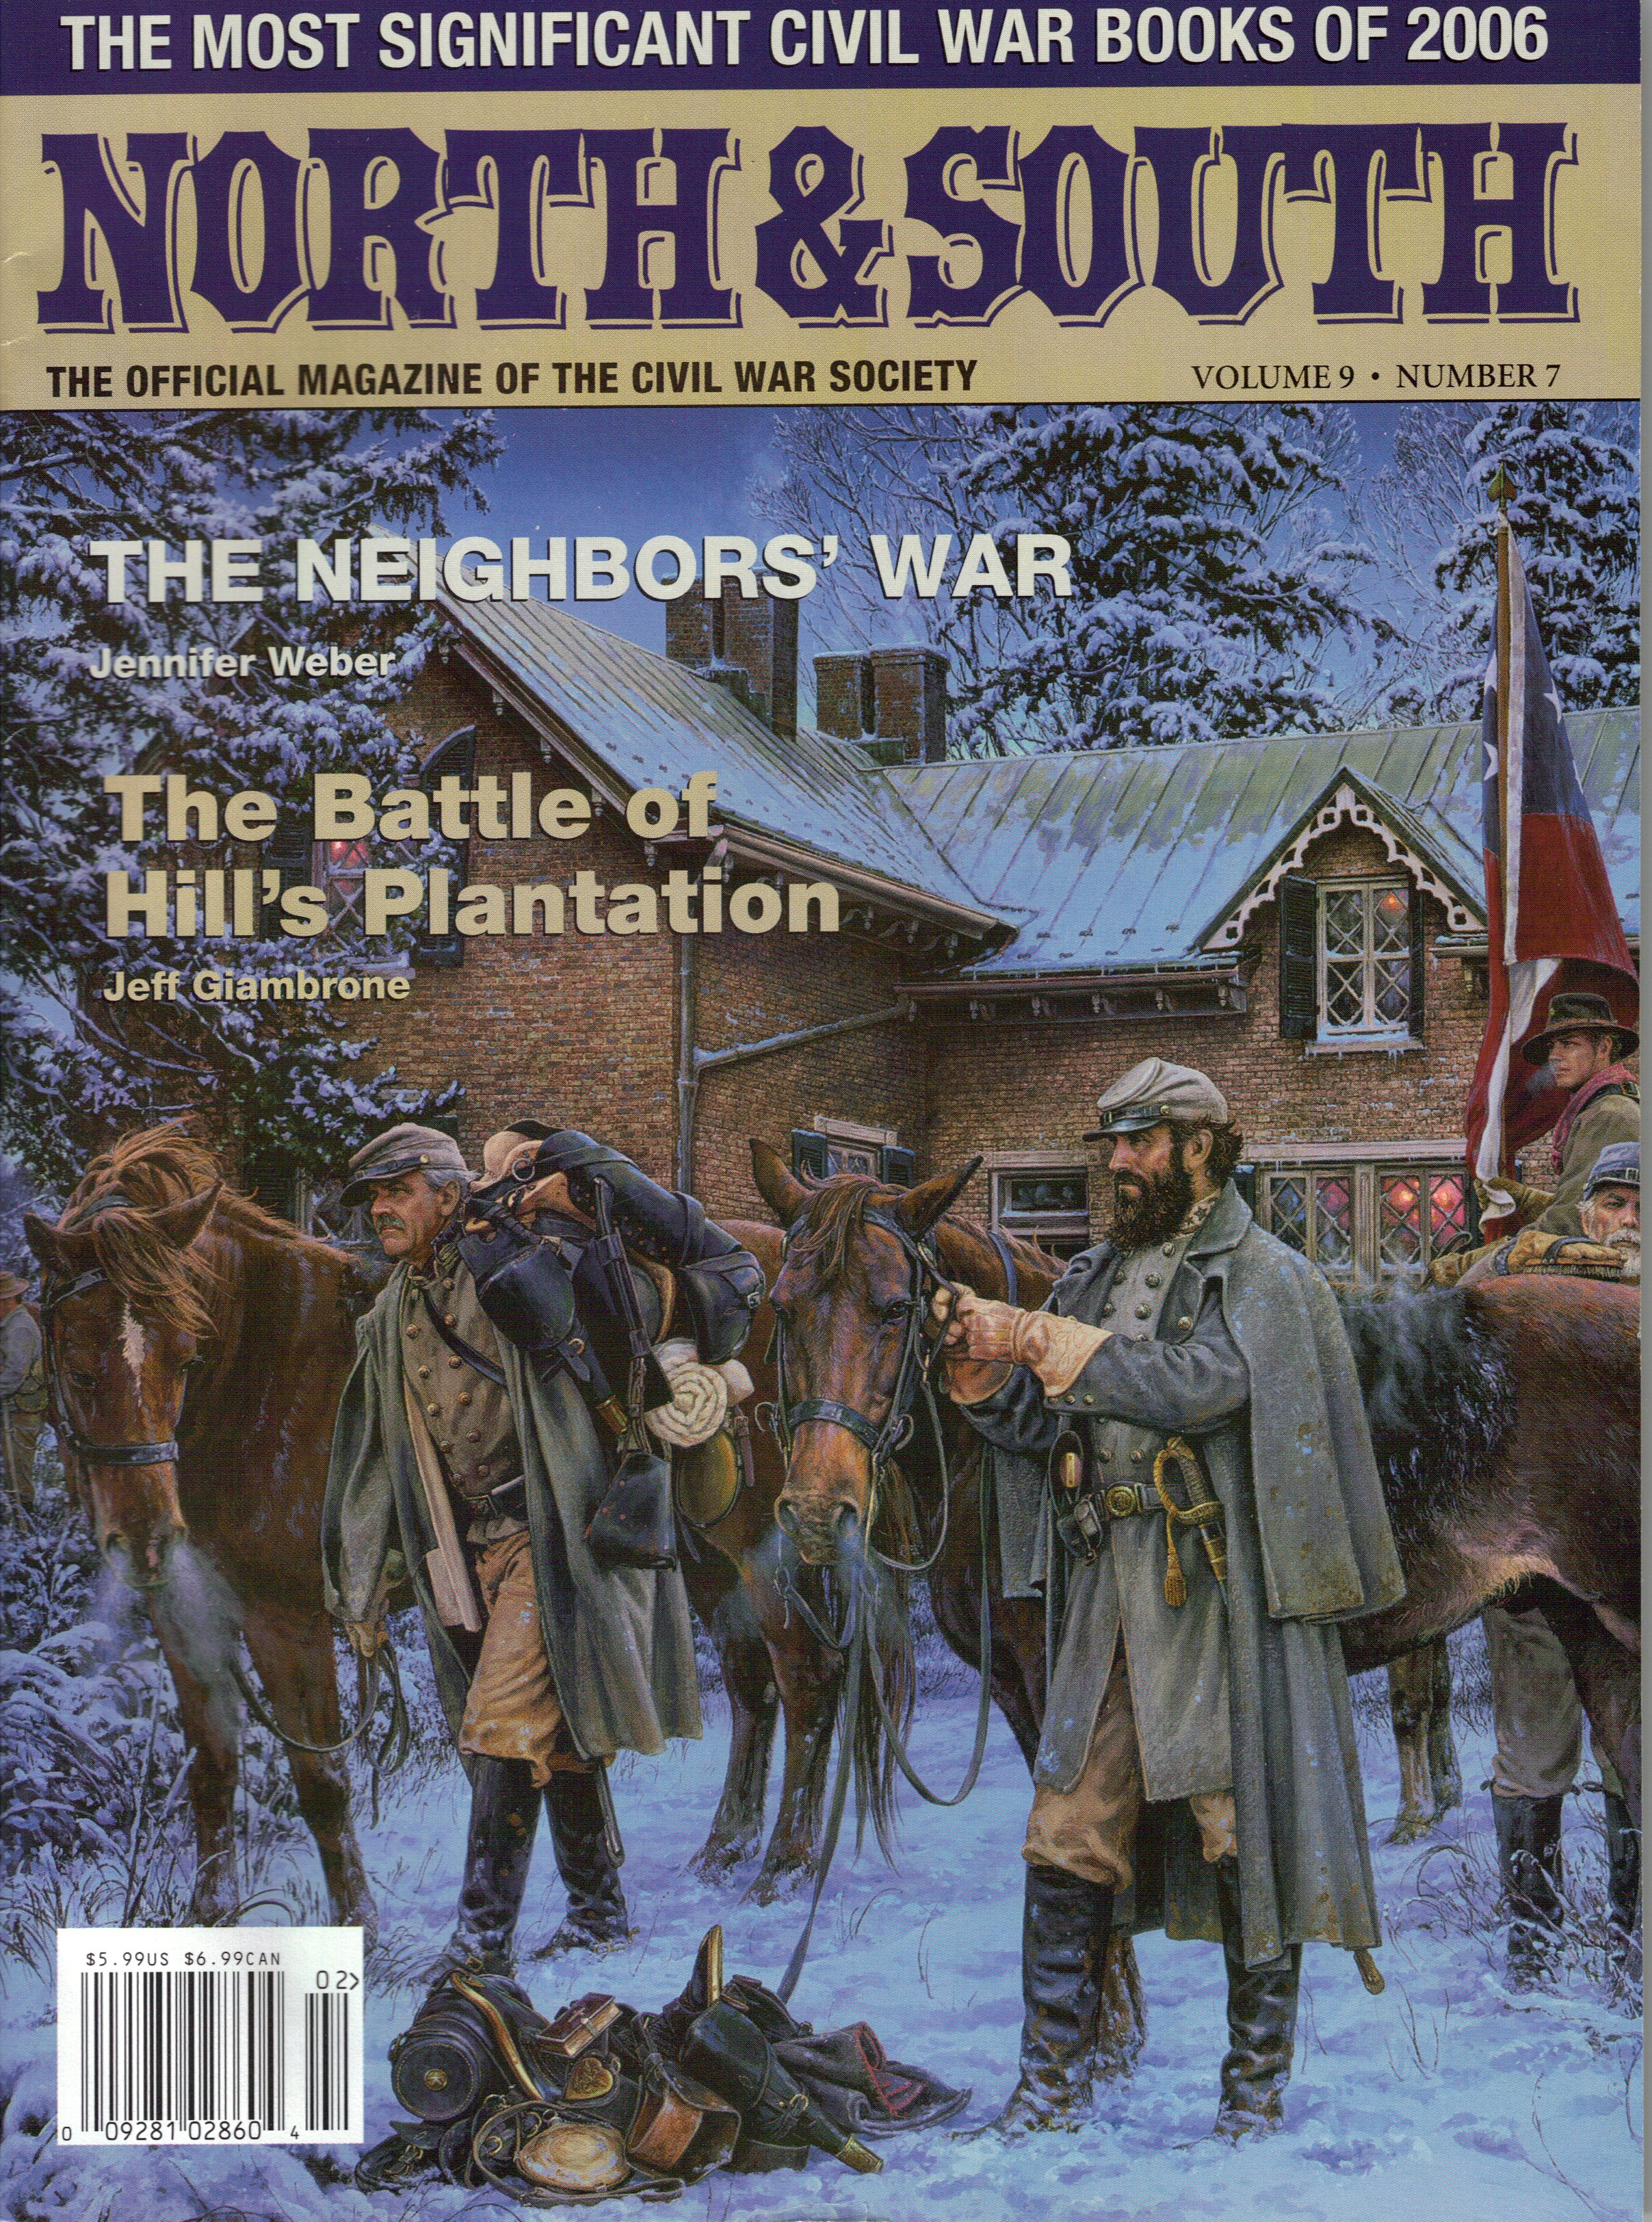 North & South Magazine, Volume 9, Number 7 (February 2007)